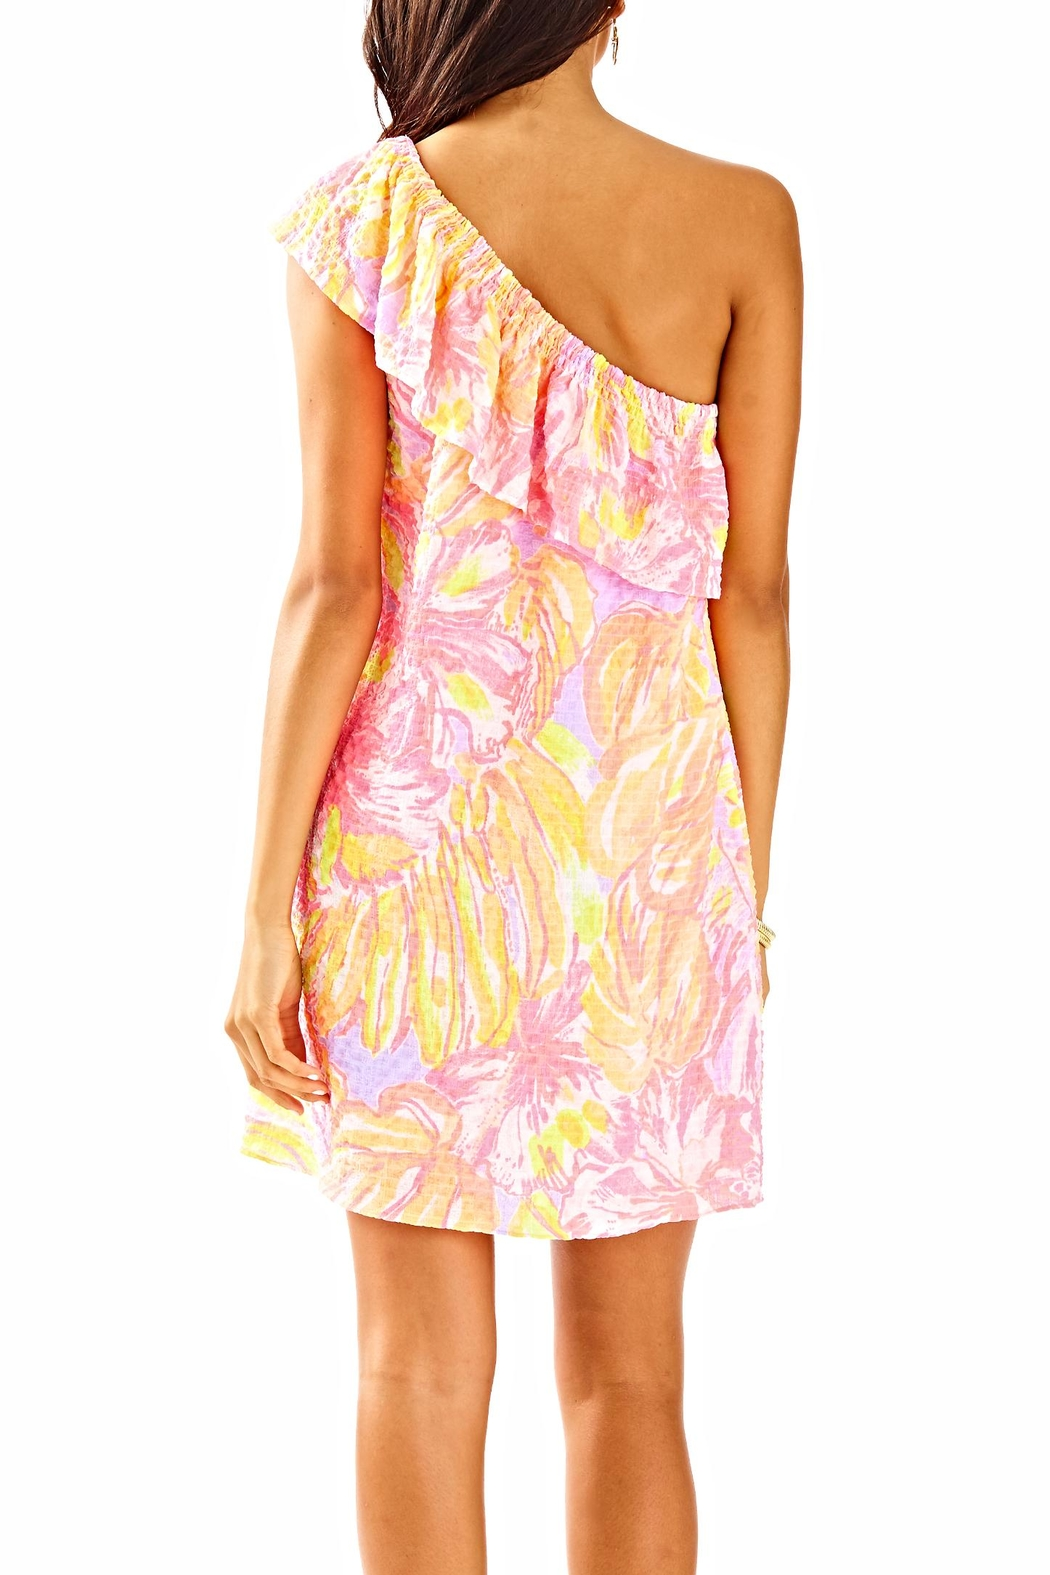 Lilly Pulitzer Emmeline Dress - Front Full Image